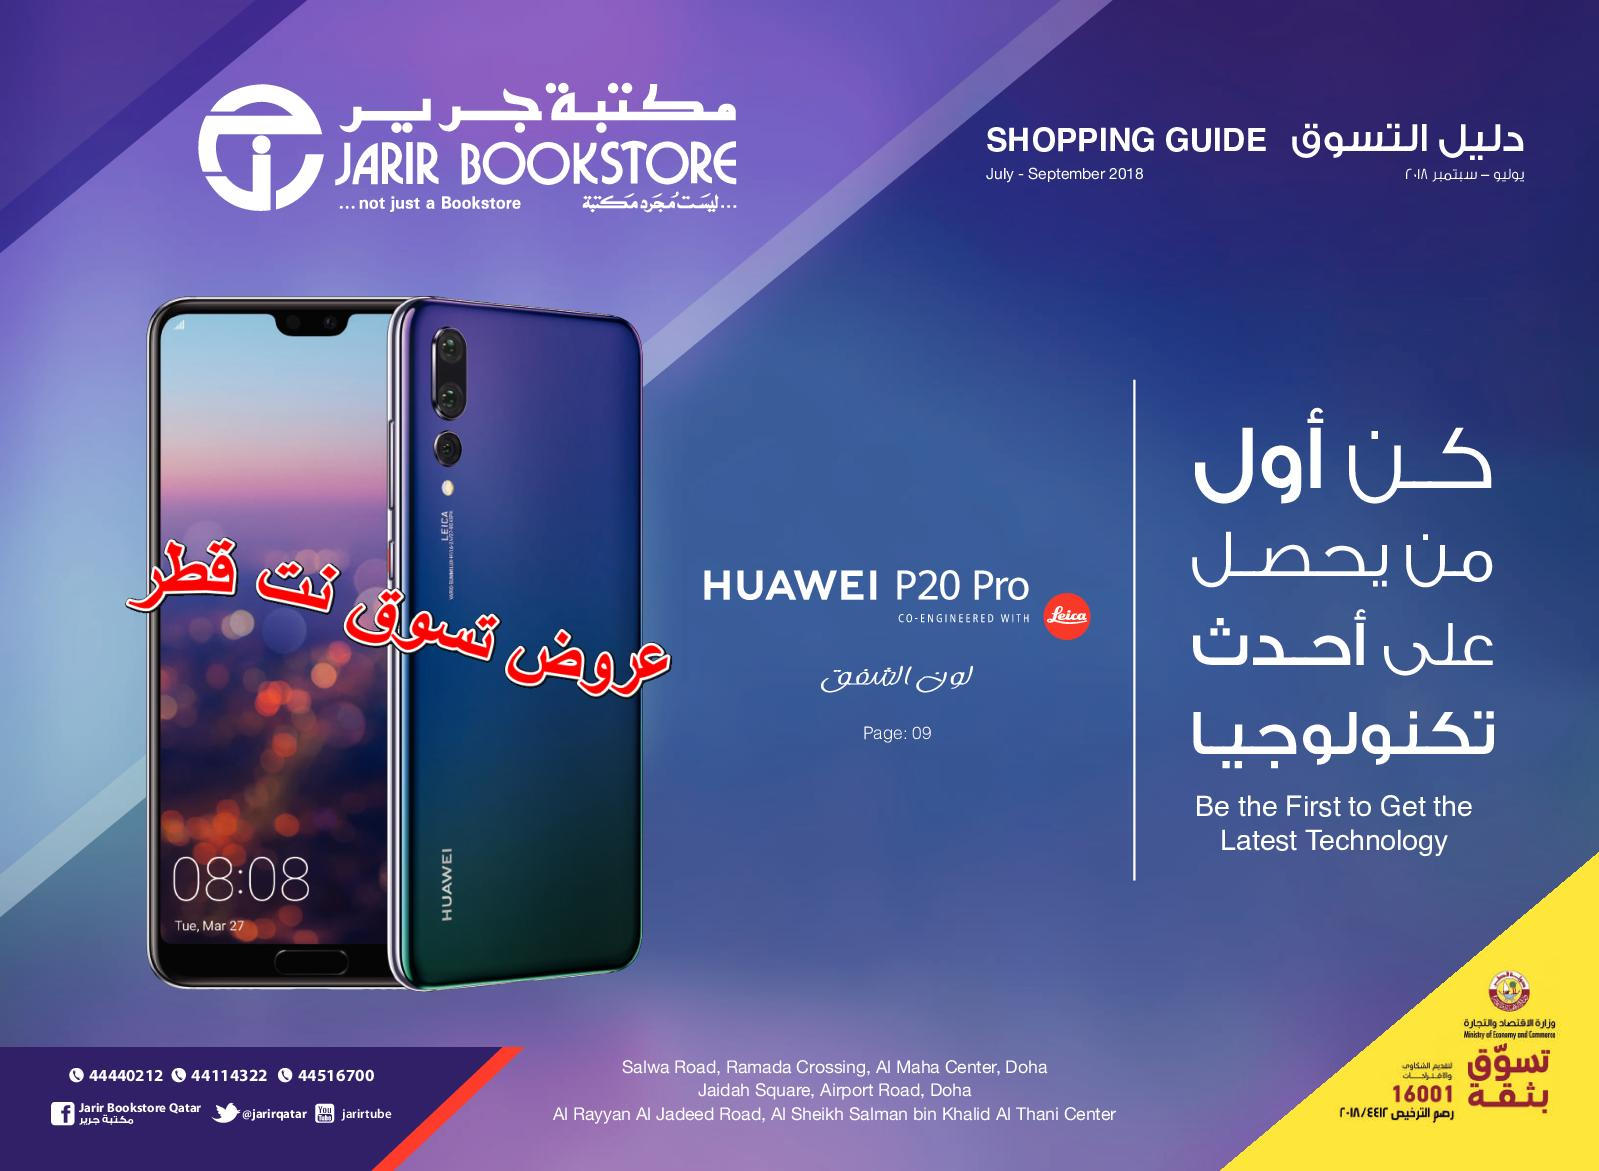 e8774cf51 Calaméo - Tsawq Net Jarir Qatar Latest Shopping Guide Jul September 2018